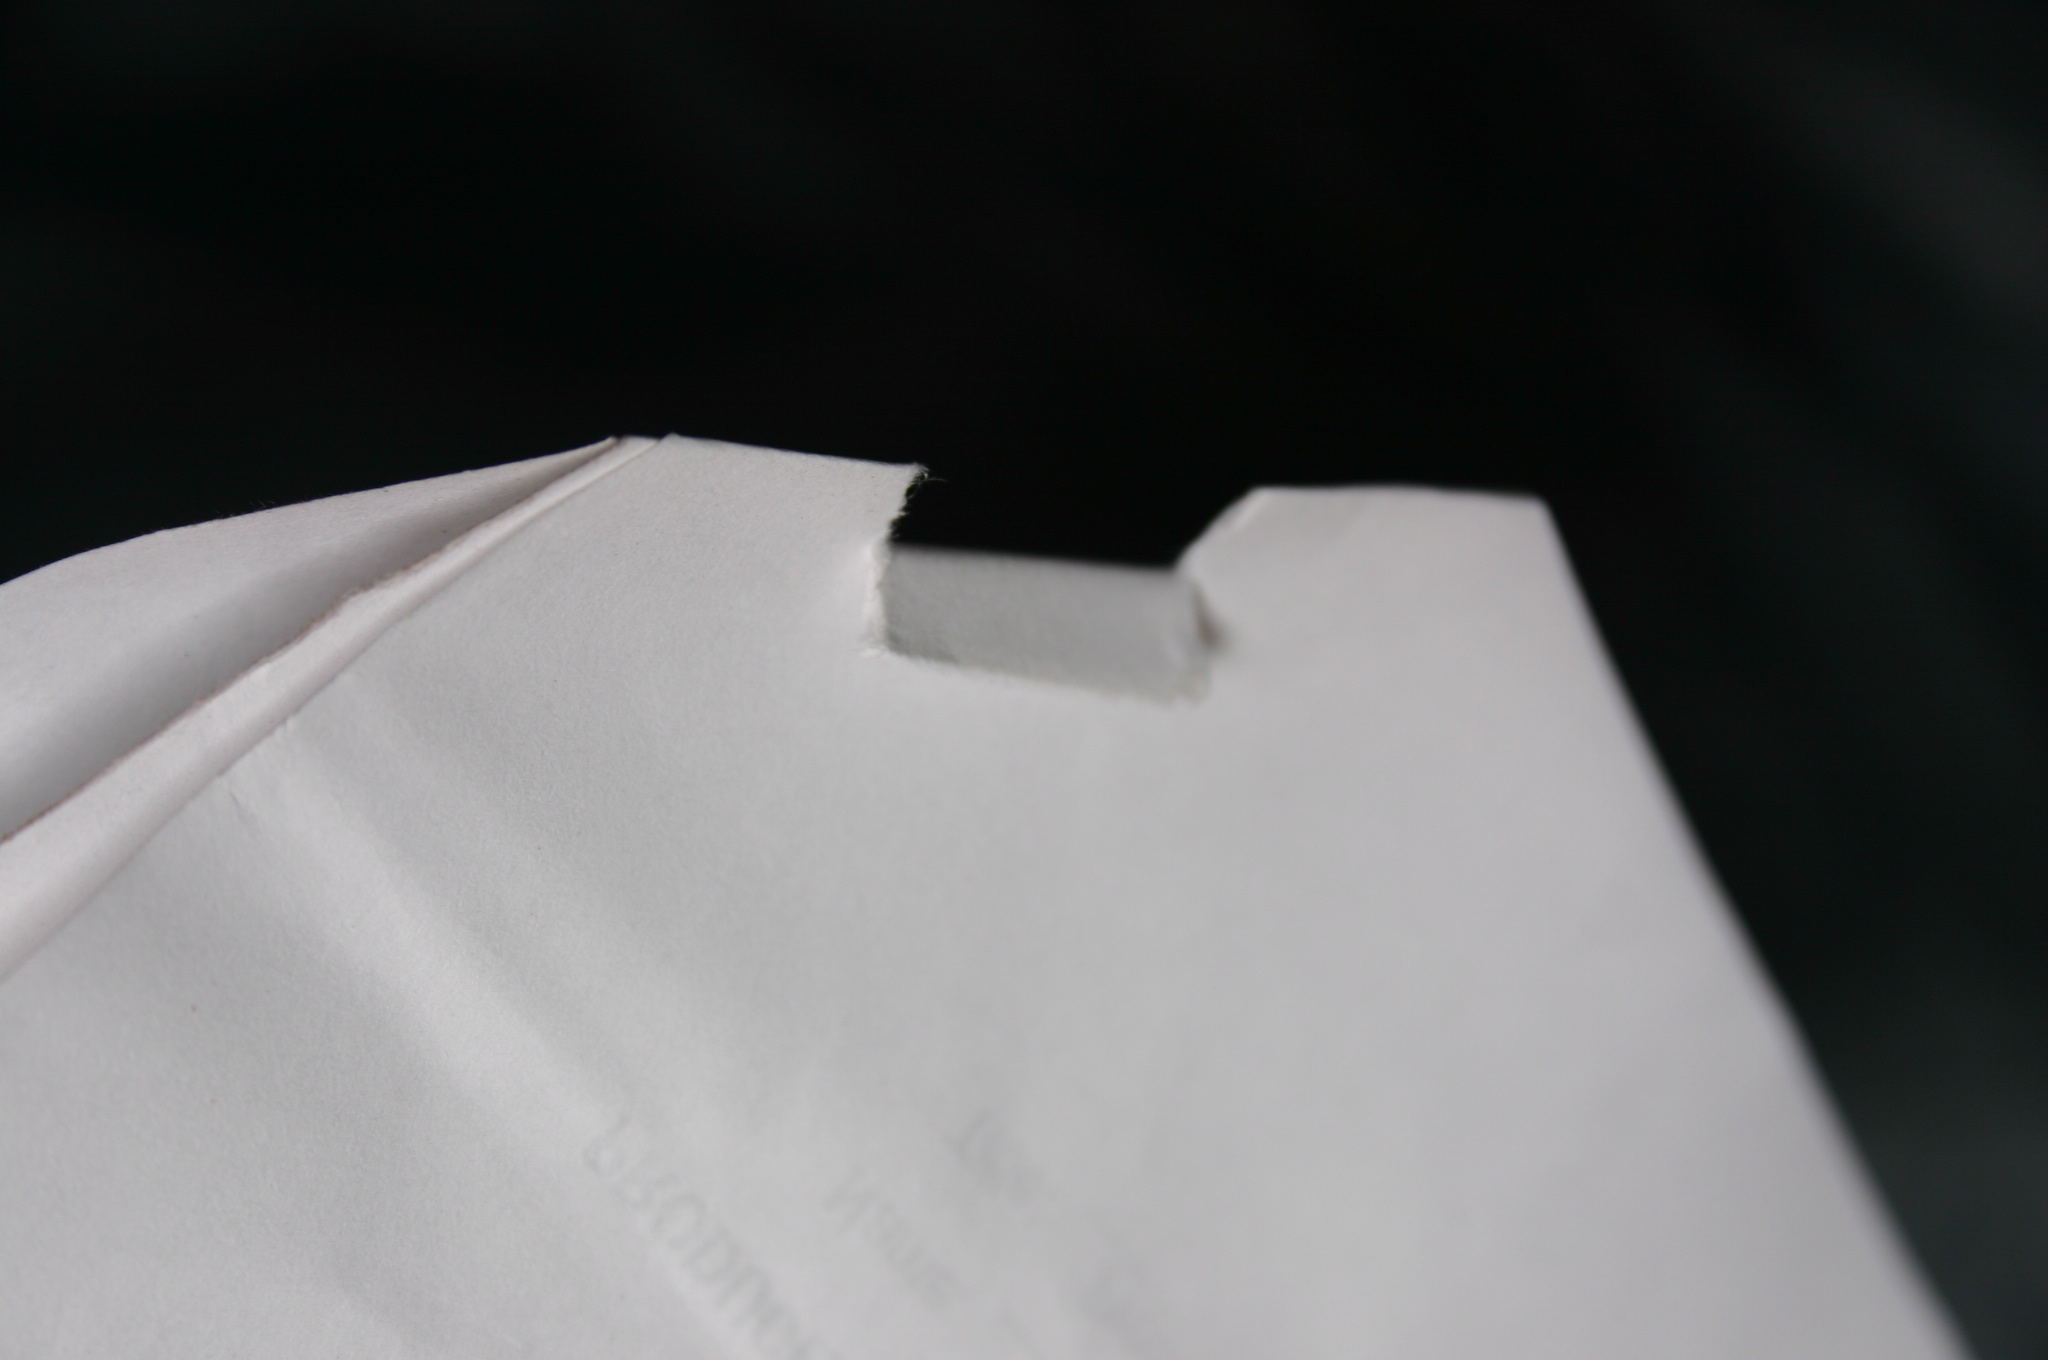 Paperclipless Paper Clipping